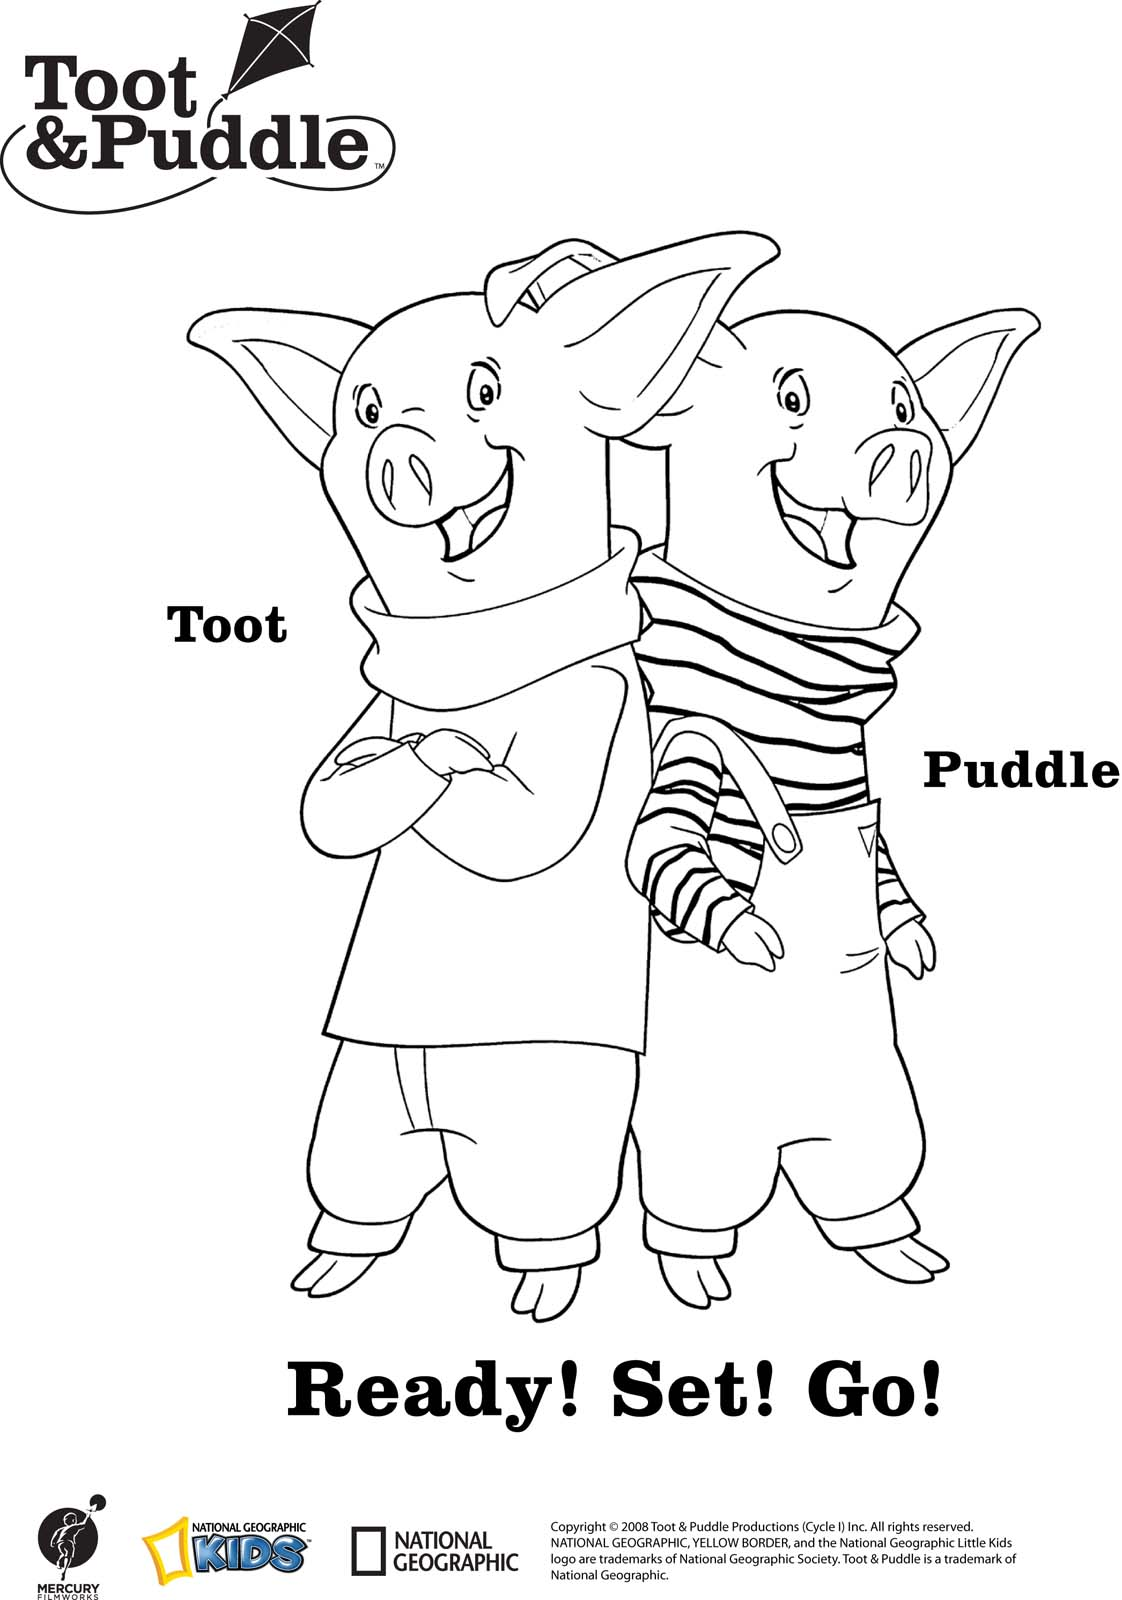 toot and puddles coloring pages - photo#1